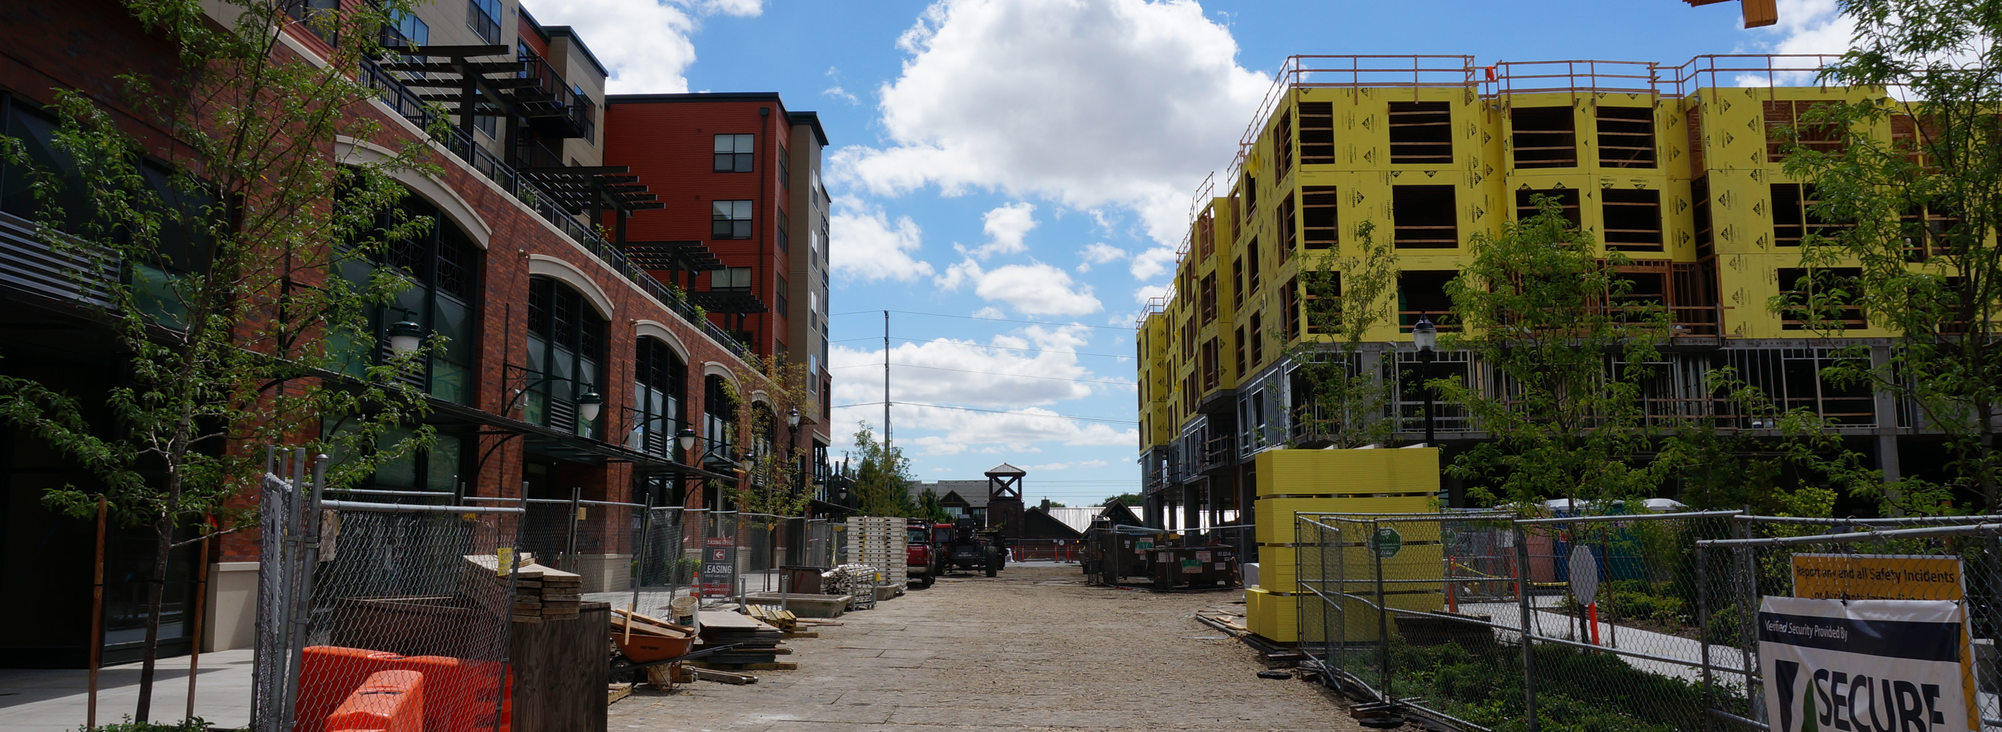 Construction in the Orenco Platform District